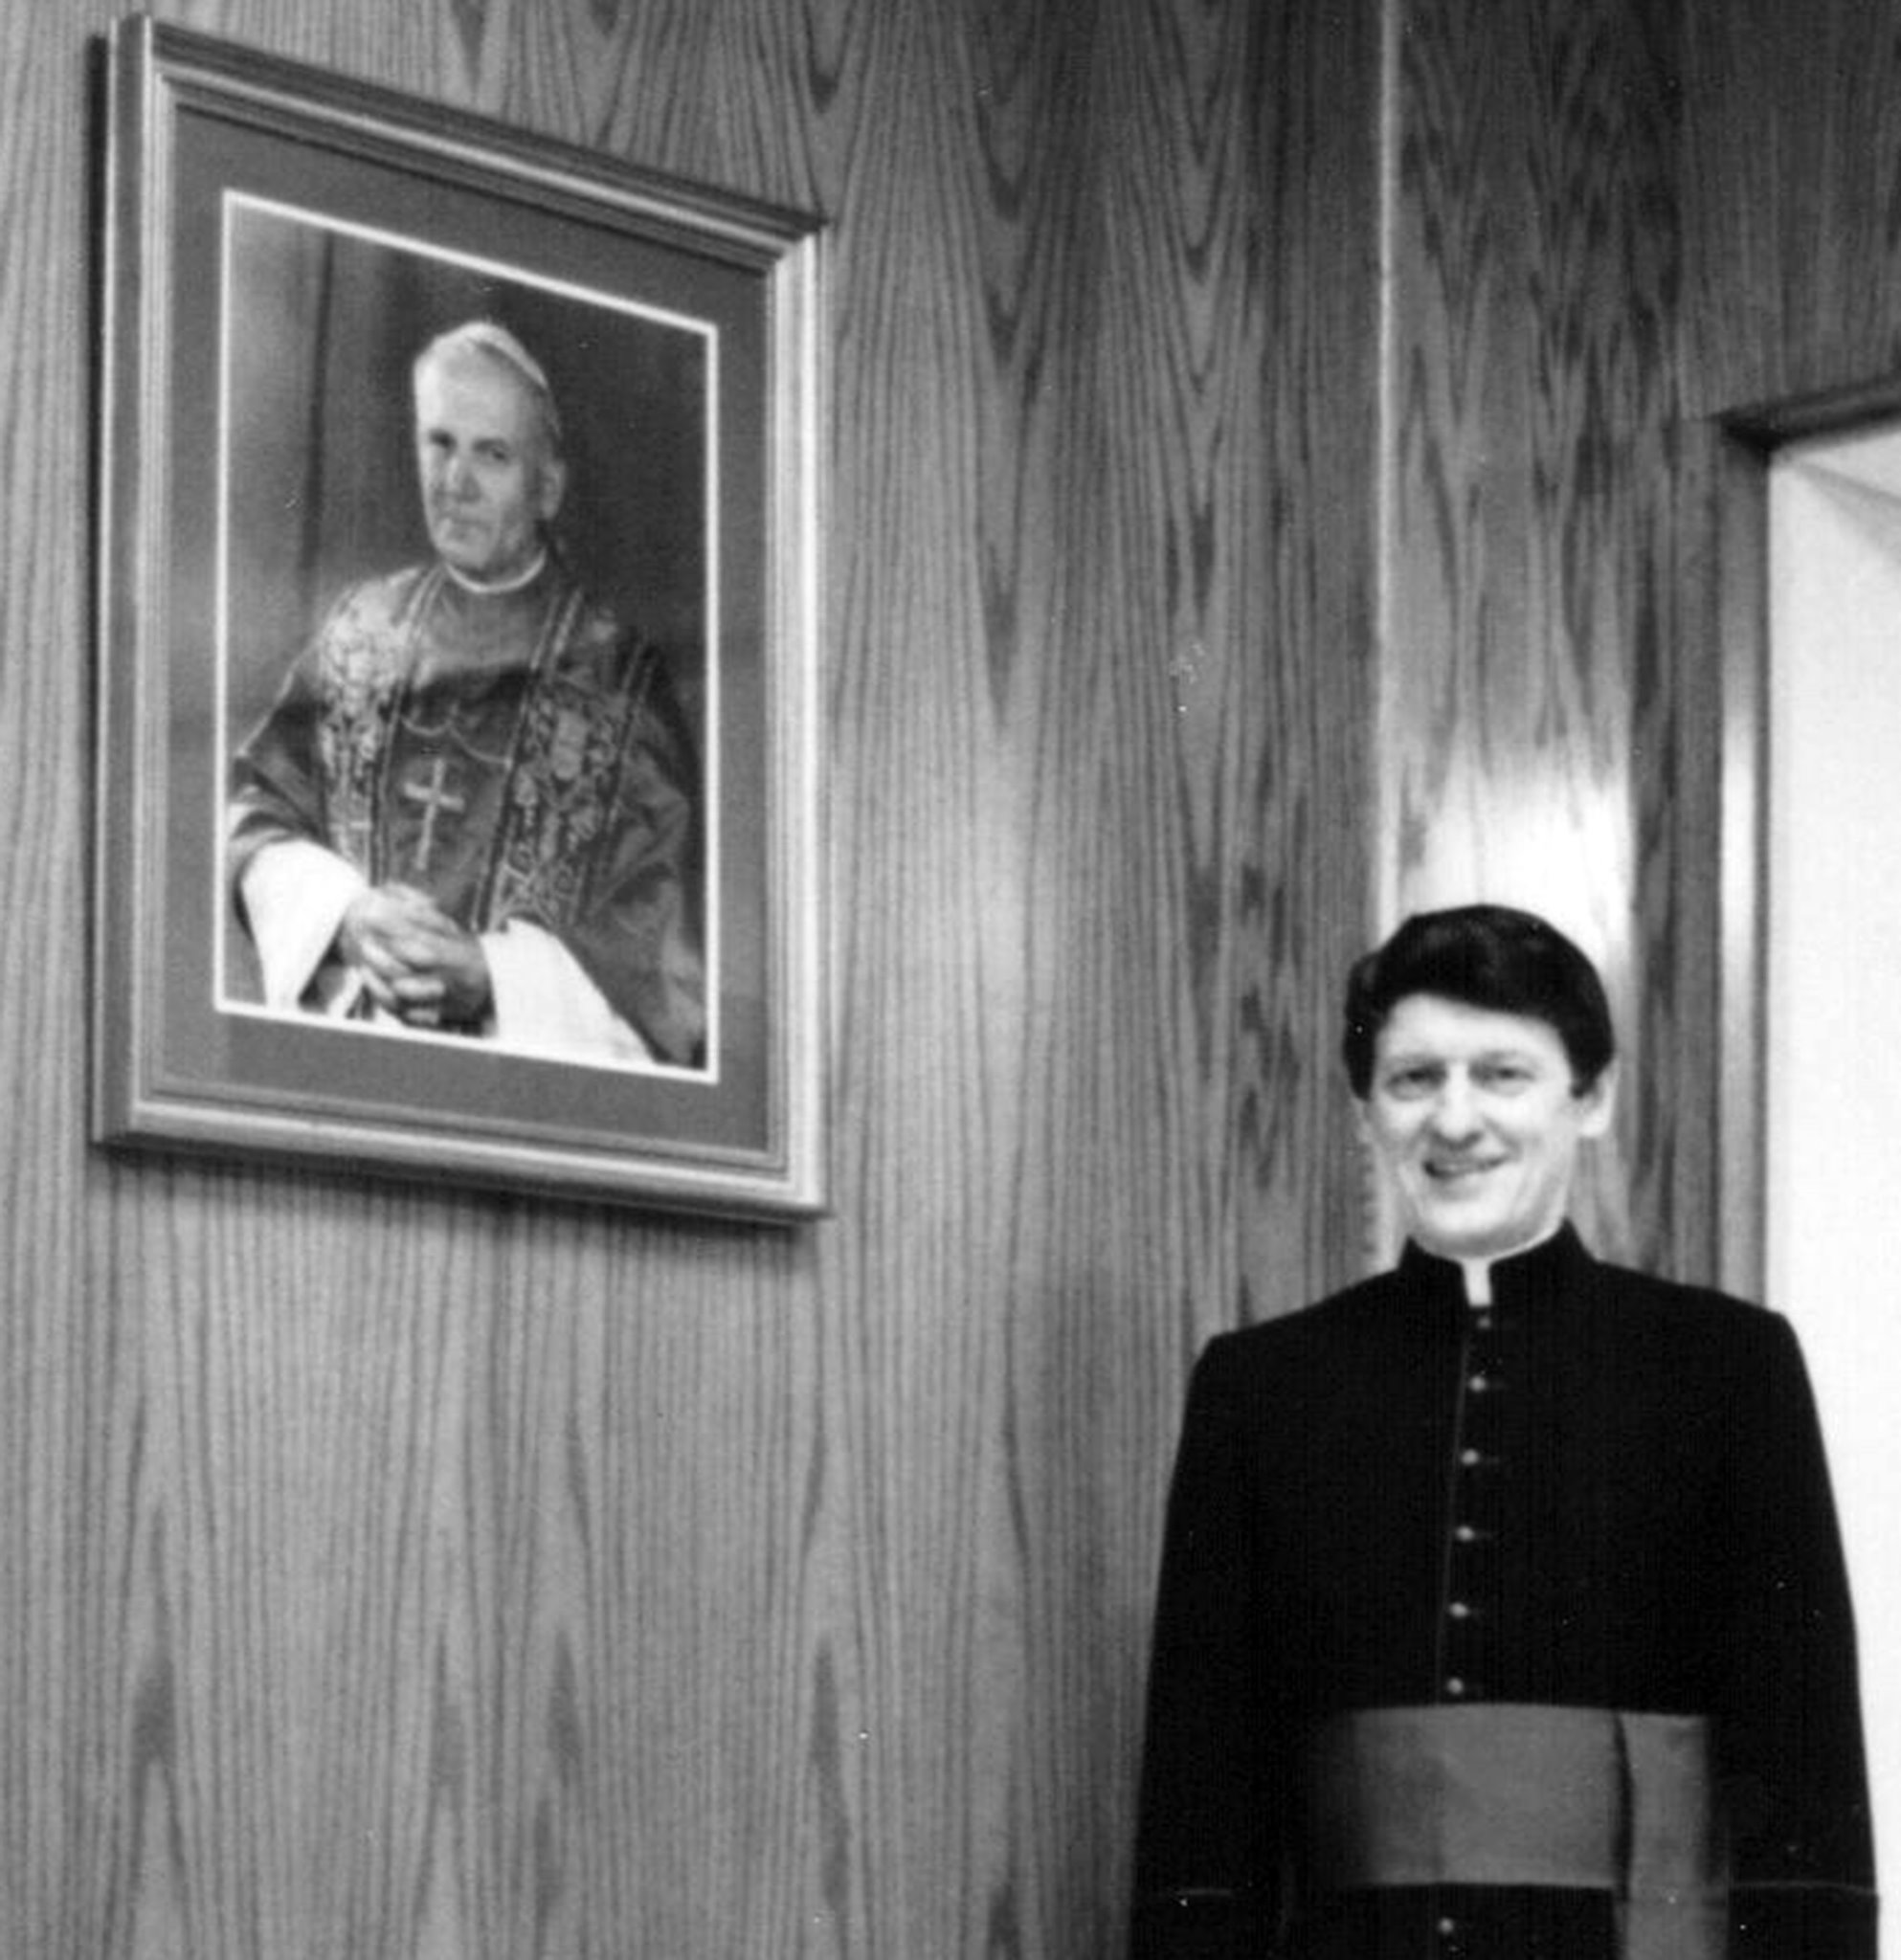 +Msgr. John Squiller passeed into Eternity